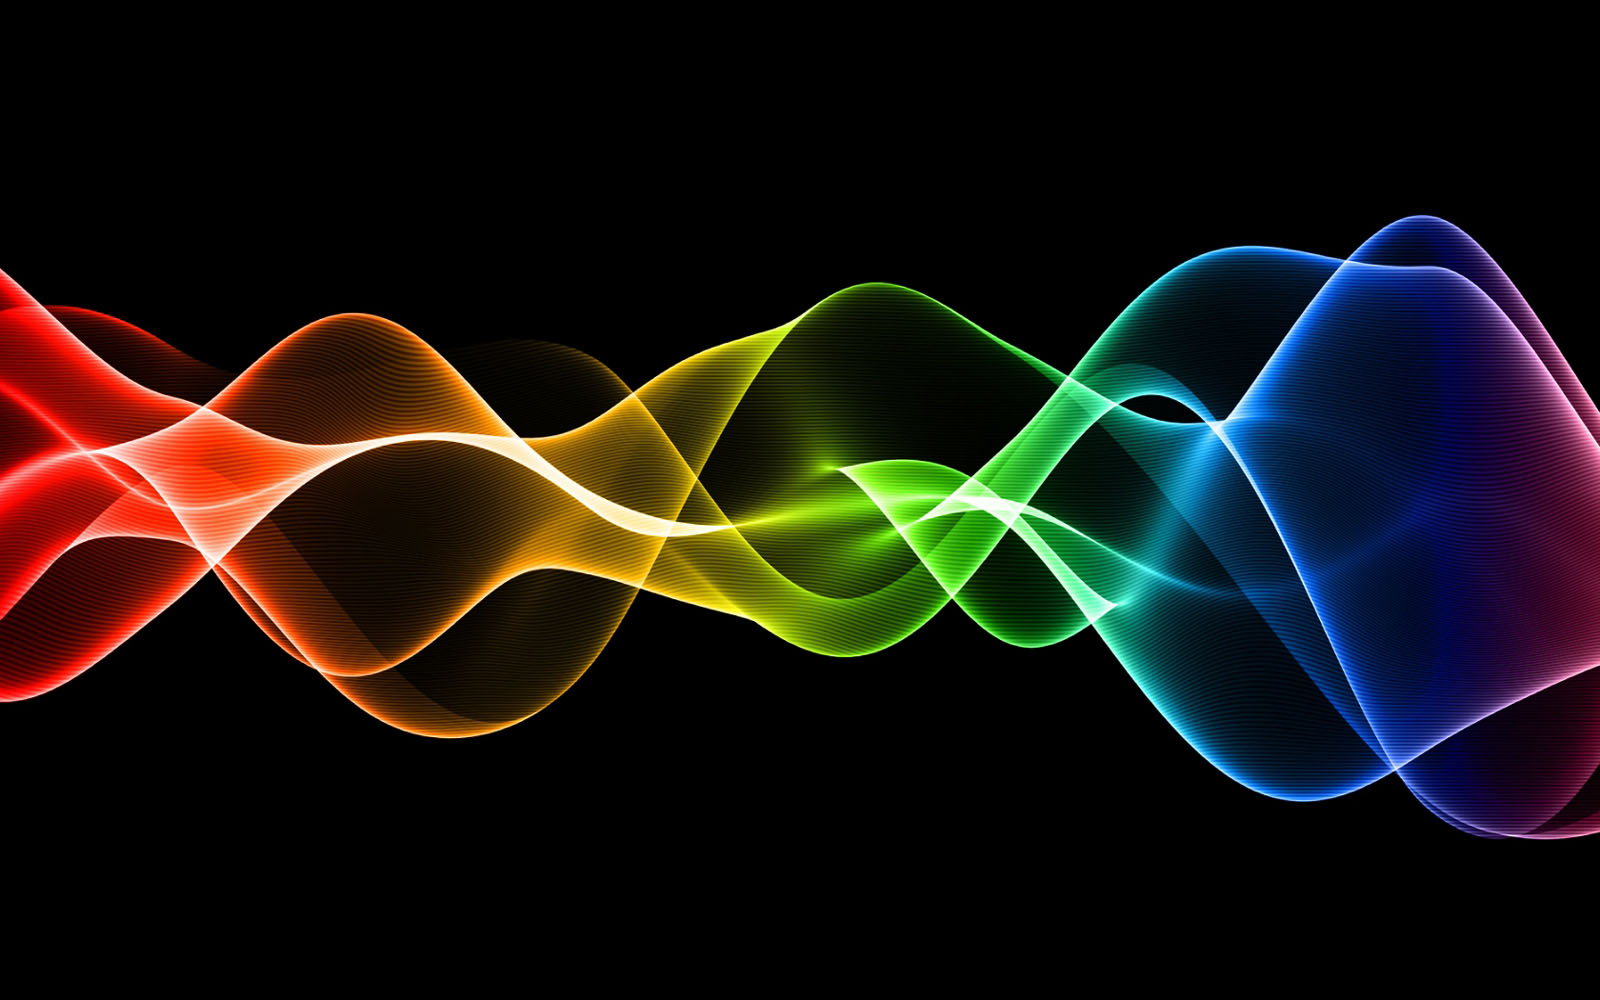 neon wallpapers backgrounds pictures - photo #3